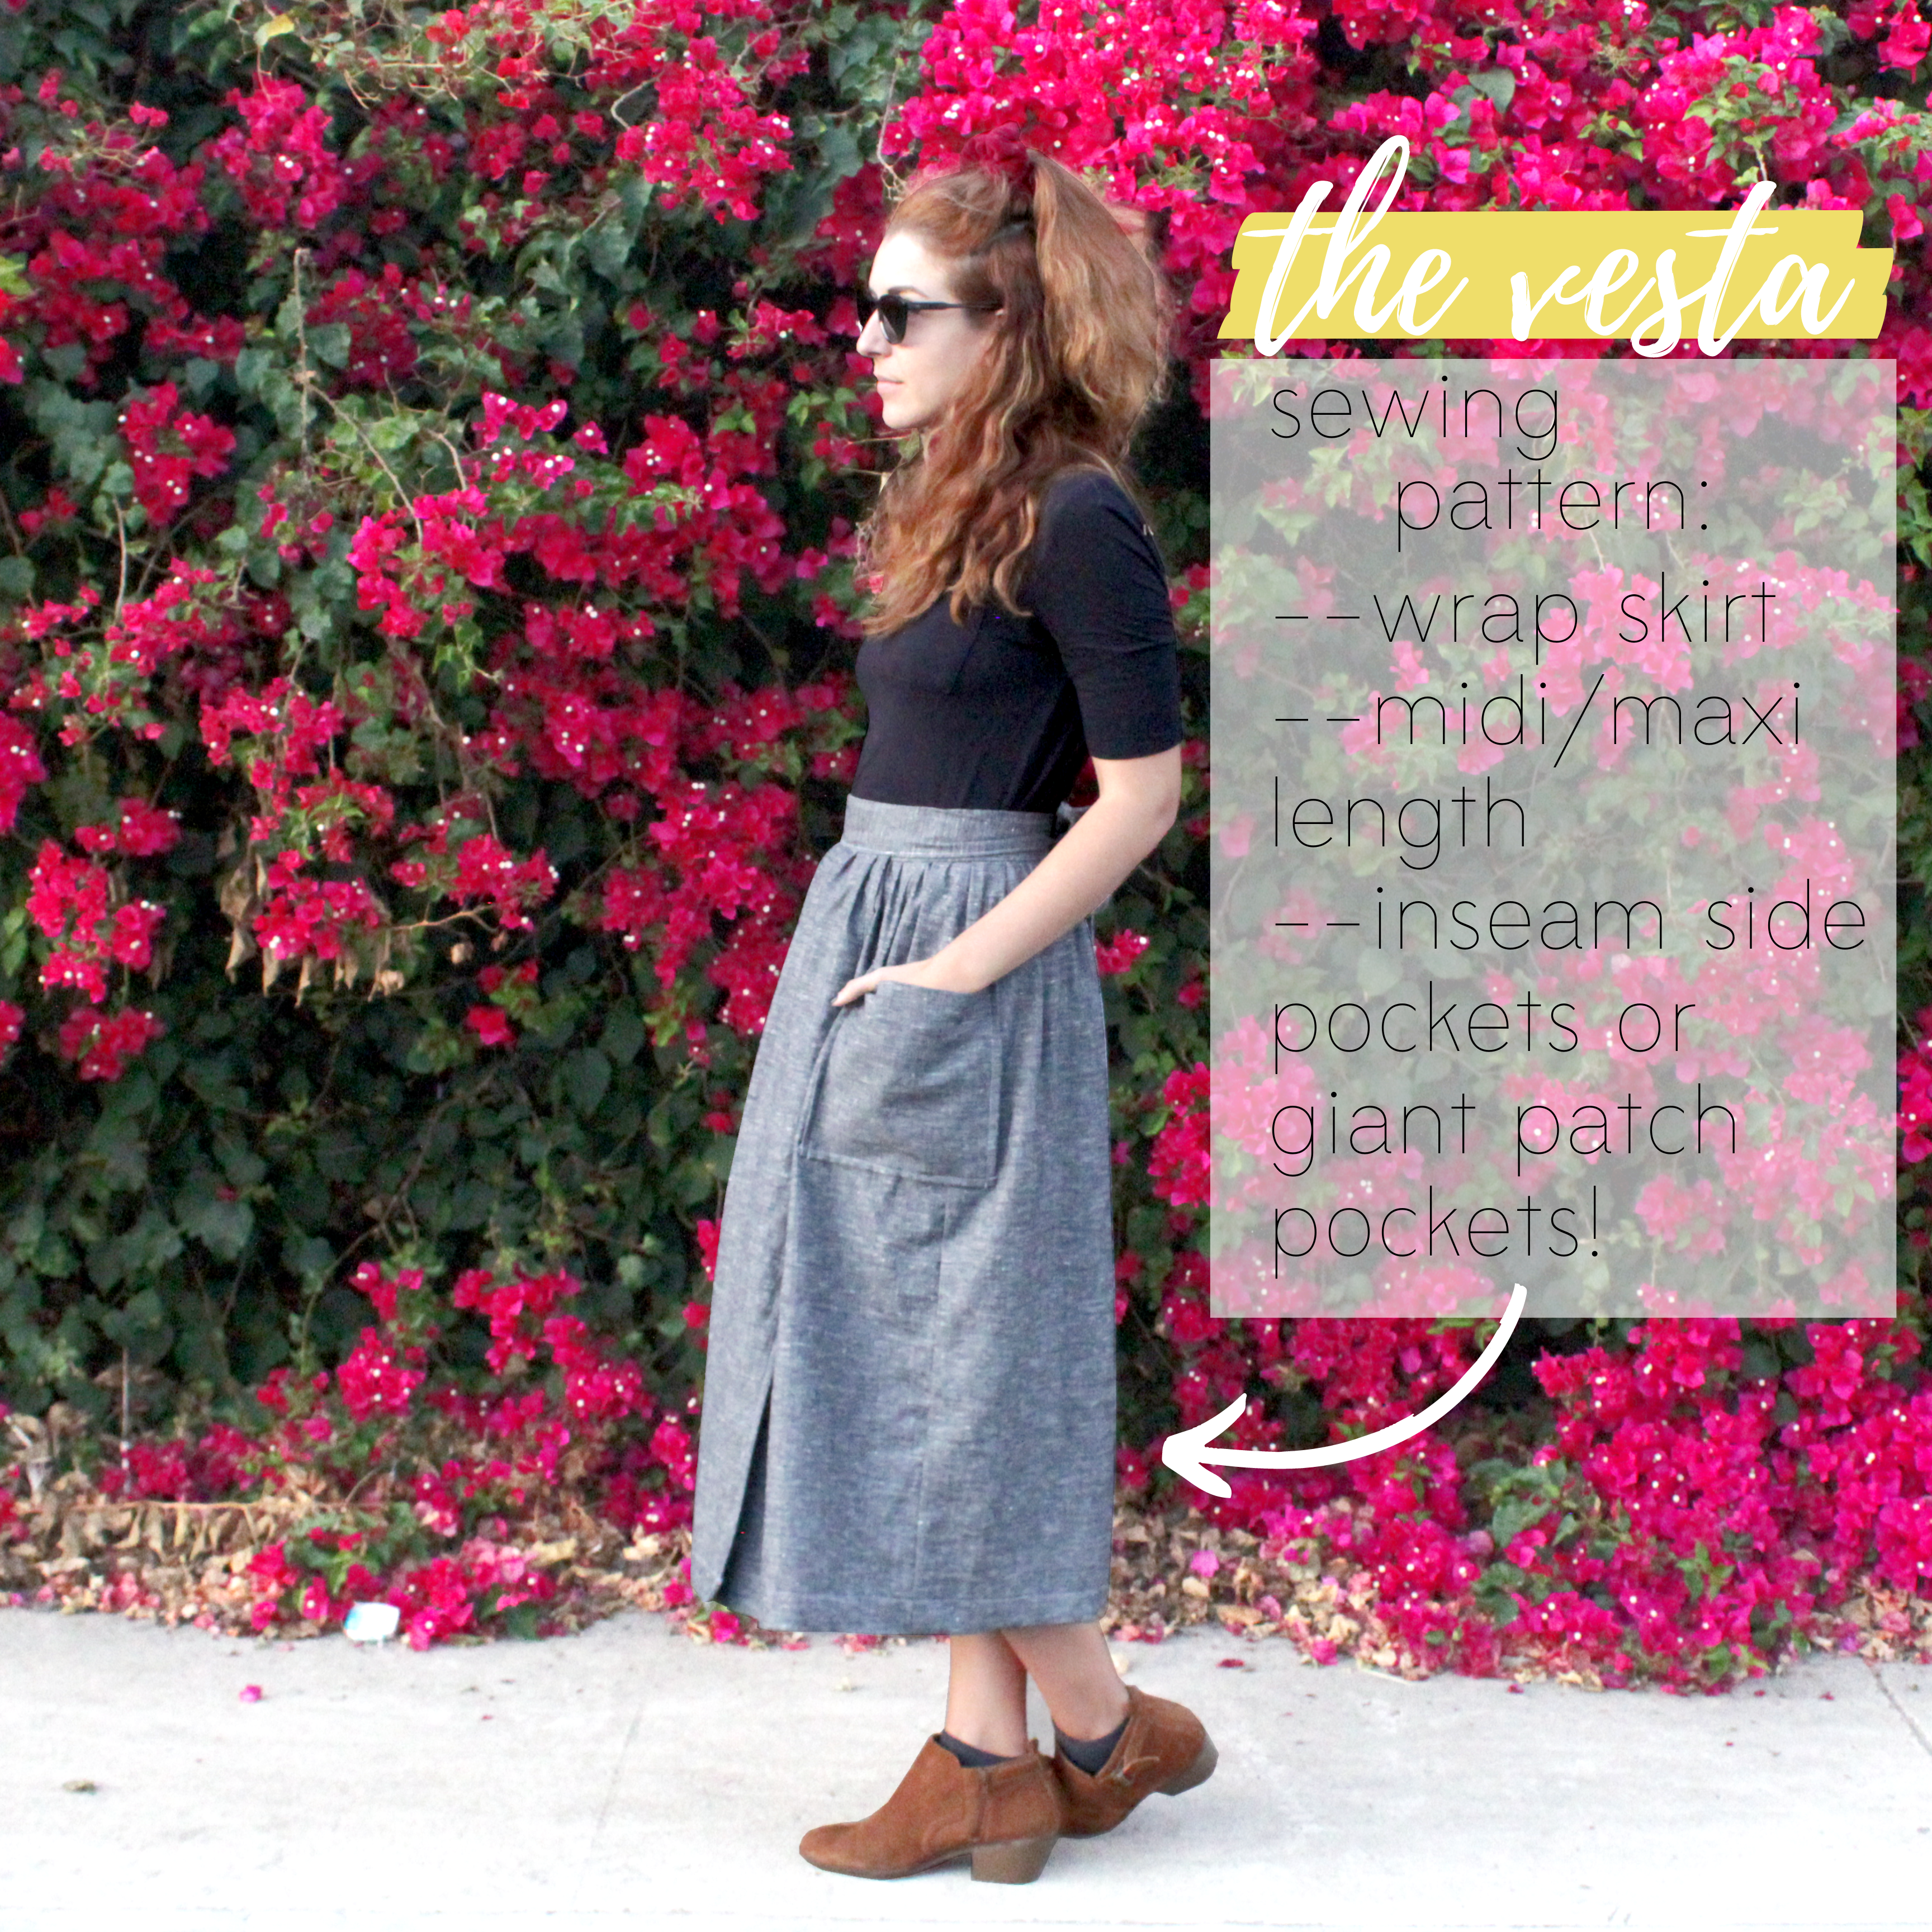 How To Sew Your Own Clothes Sewing Pattern Intro: The Vesta Sewing Pattern